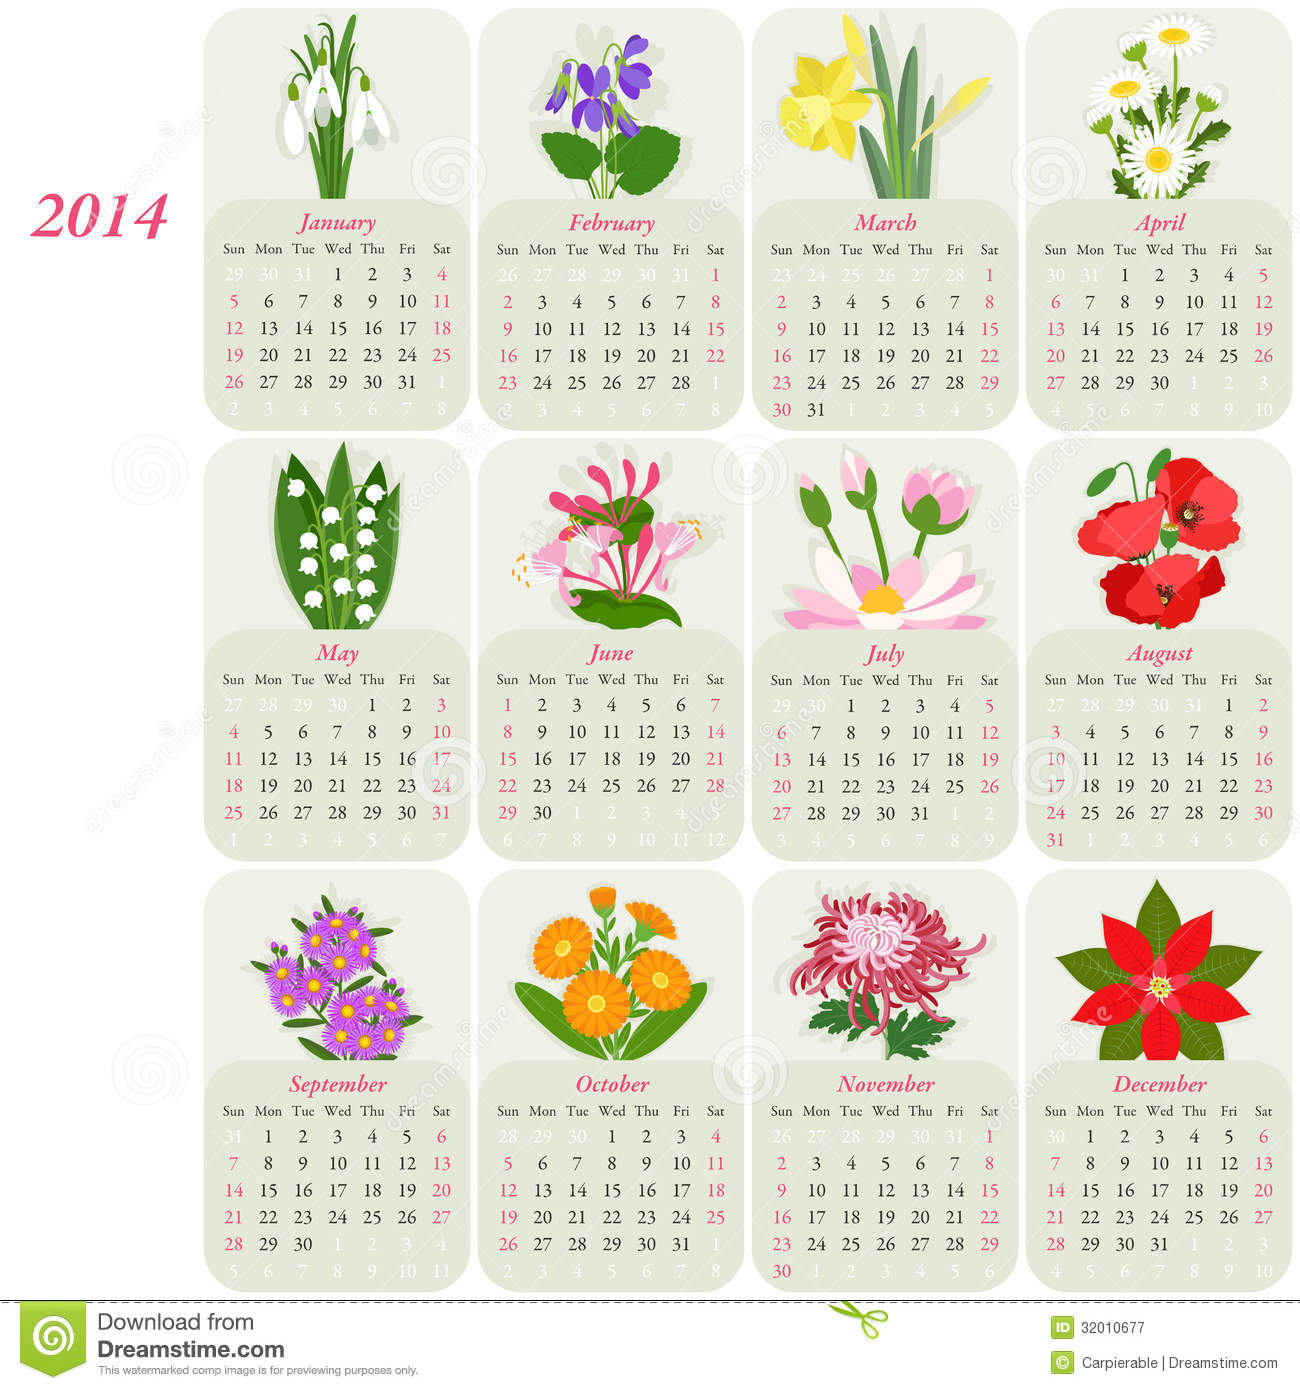 2014 Floral Calendar Royalty Free Stock Photography - Image: 32010677